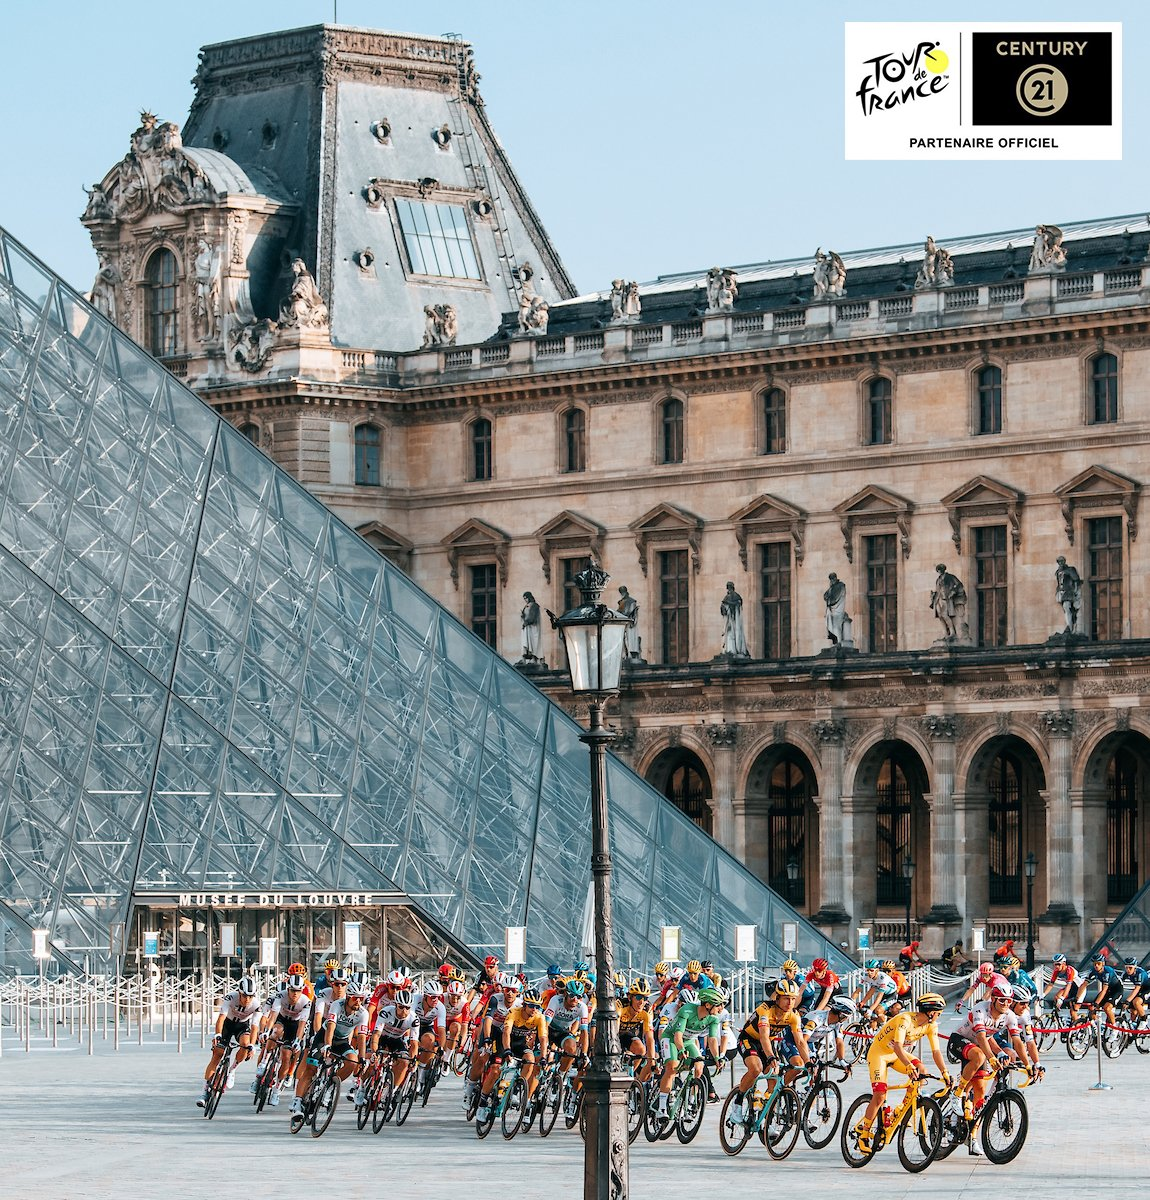 😍 PIC OF THE DAY 😍 by @century21fr  #TDF2020  📸 A.S.O. / @a_gruber - @jeredgruber https://t.co/3UoQHWe58s